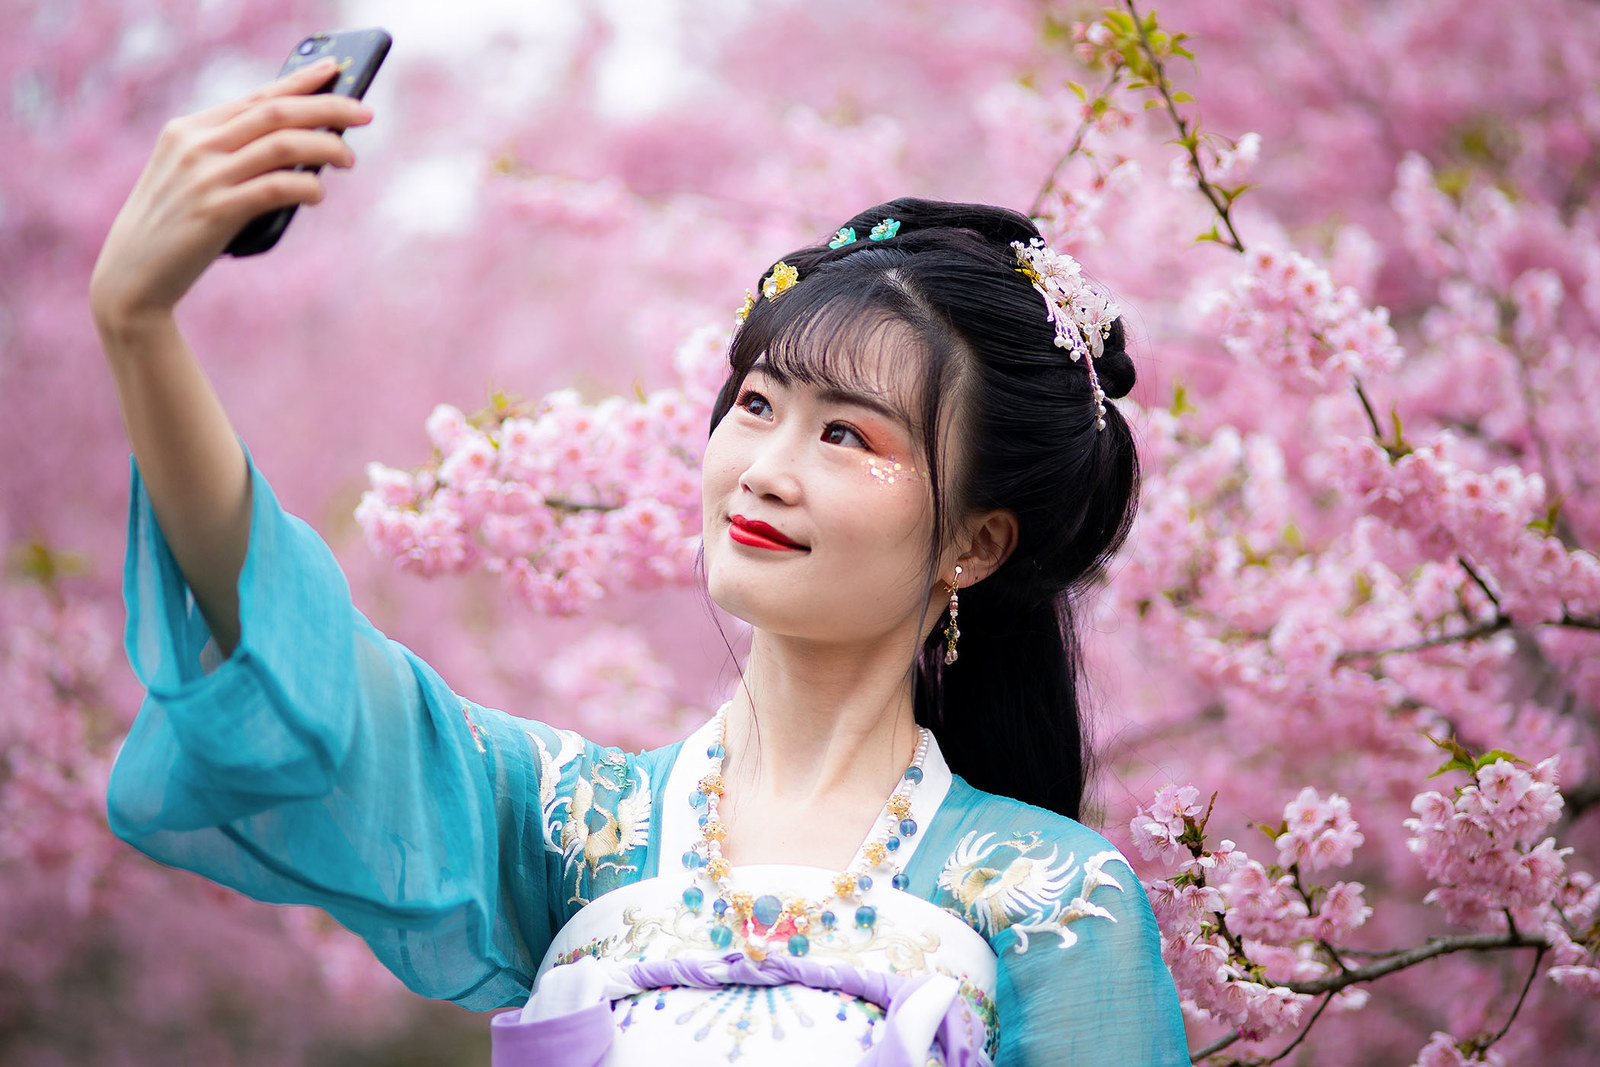 A tourist wearing Hanfu takes a selfie with cherry blossoms at the Nanjing Zhongshan Botanical Garden on March 17, in Nanjing, China.